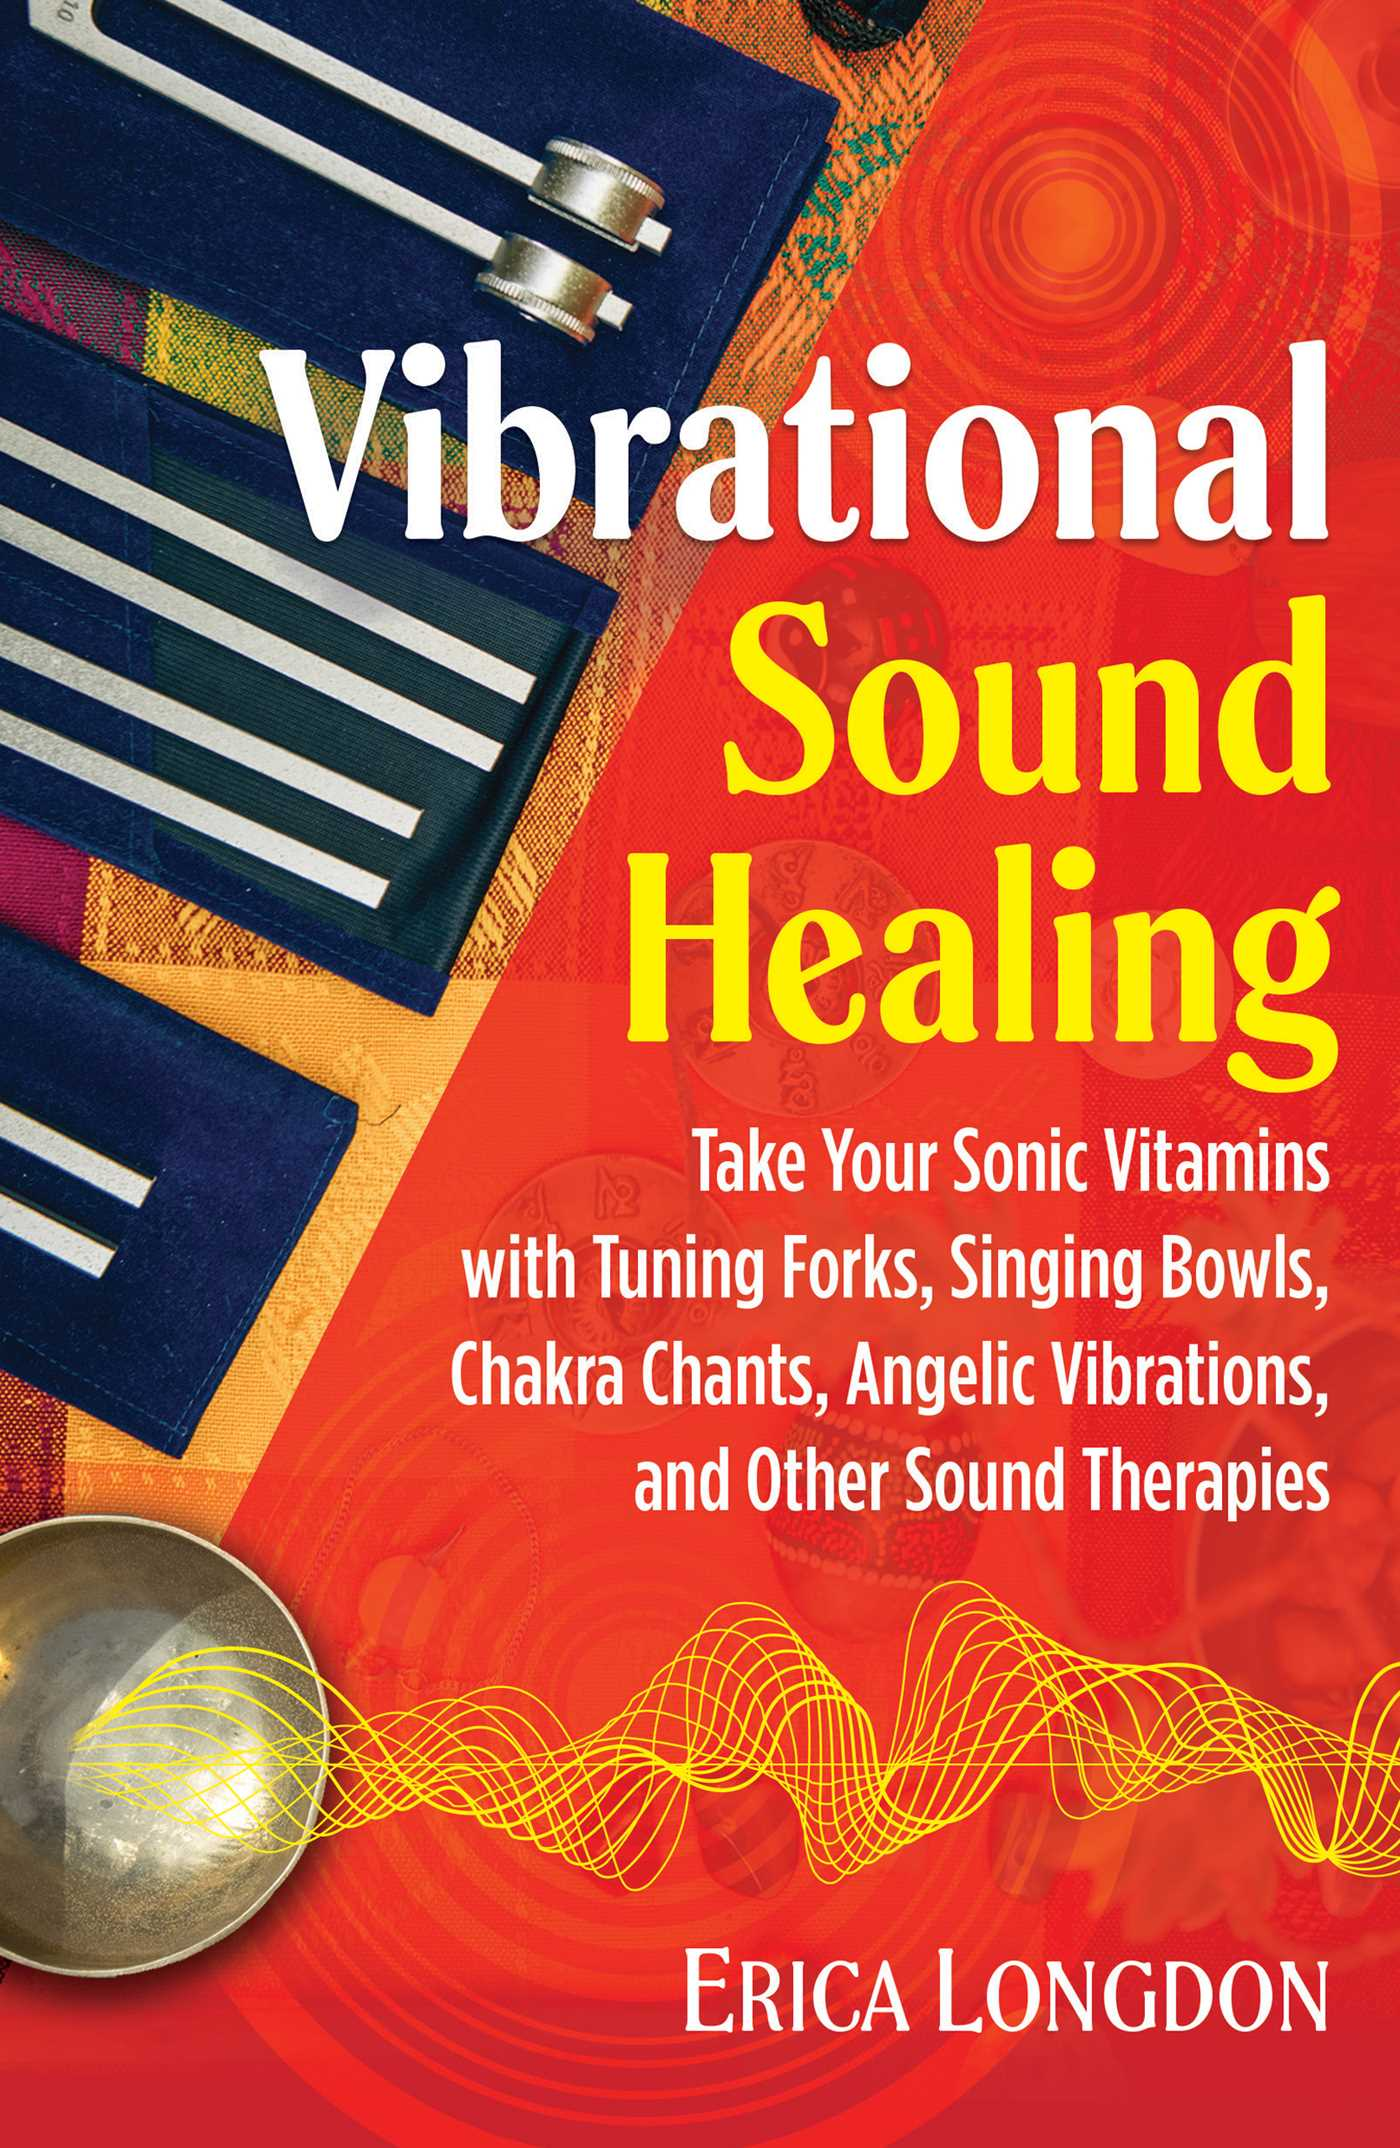 [PDF] [EPUB] Vibrational Sound Healing: Take Your Sonic Vitamins with Tuning Forks, Singing Bowls, Chakra Chants, Angelic Vibrations, and Other Sound Therapies Download by Erica Longdon